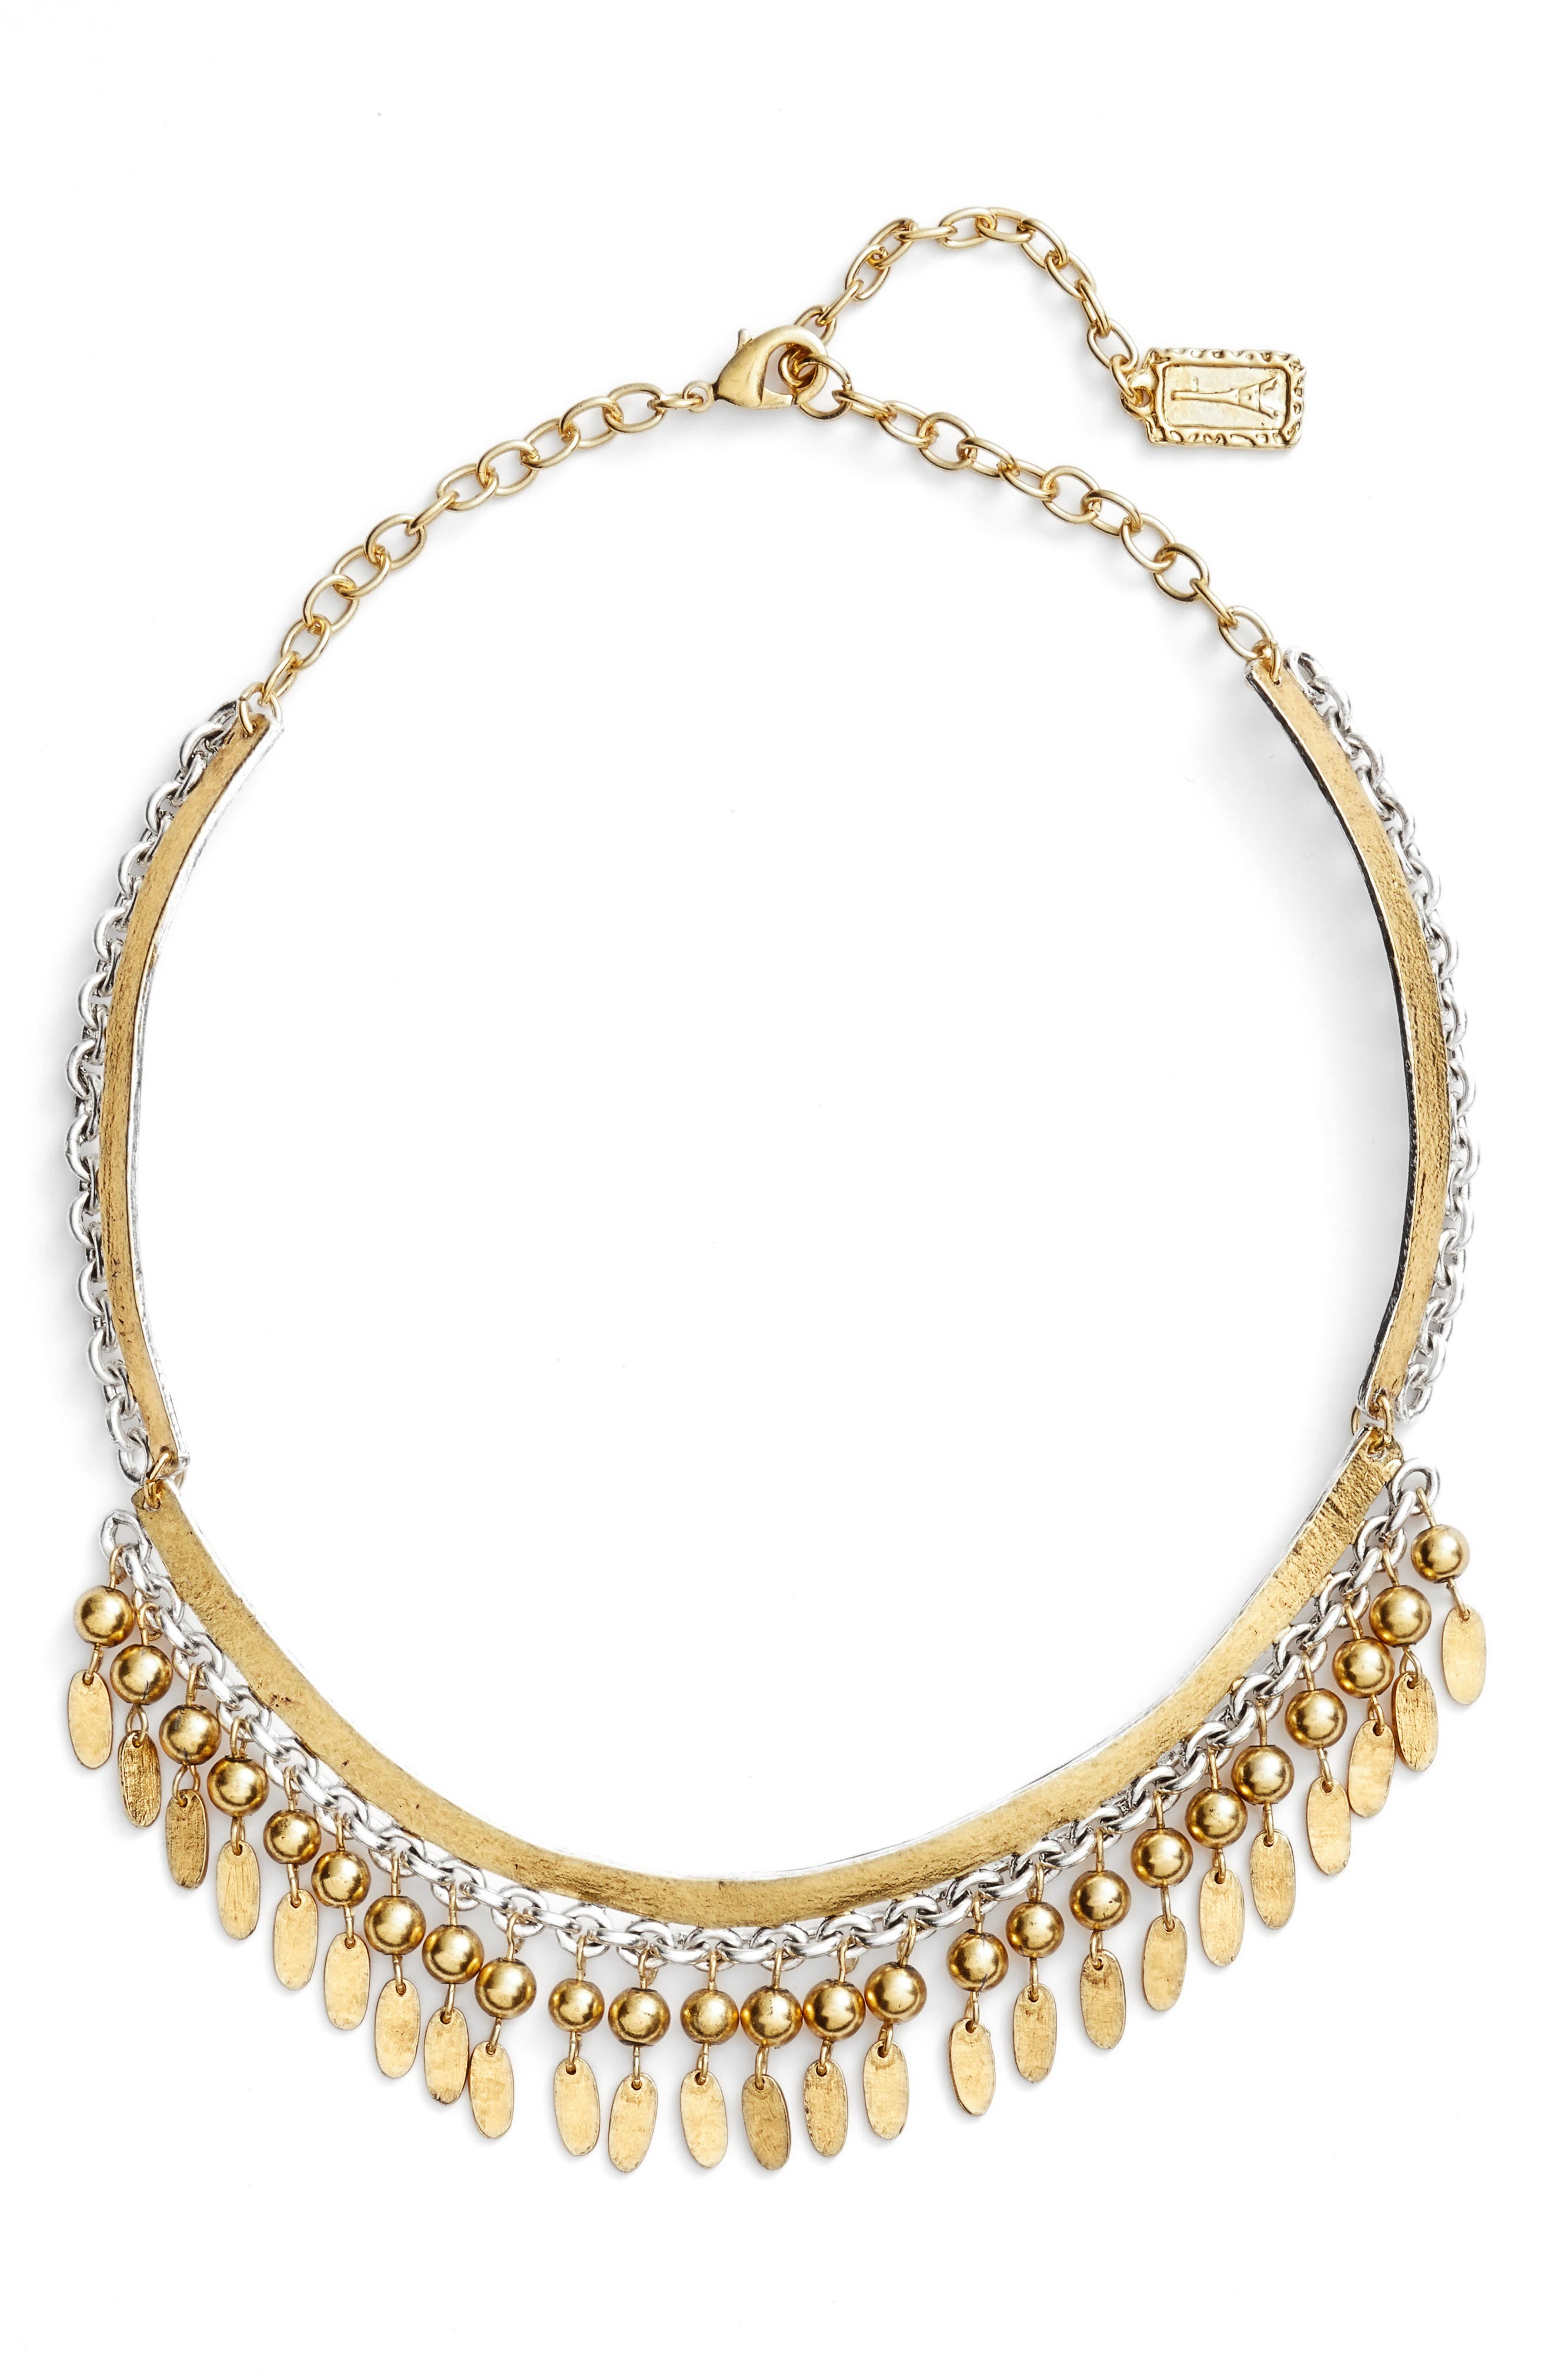 Fringe Collar Necklace,                         Main,                         color, Gold/Silver Mix